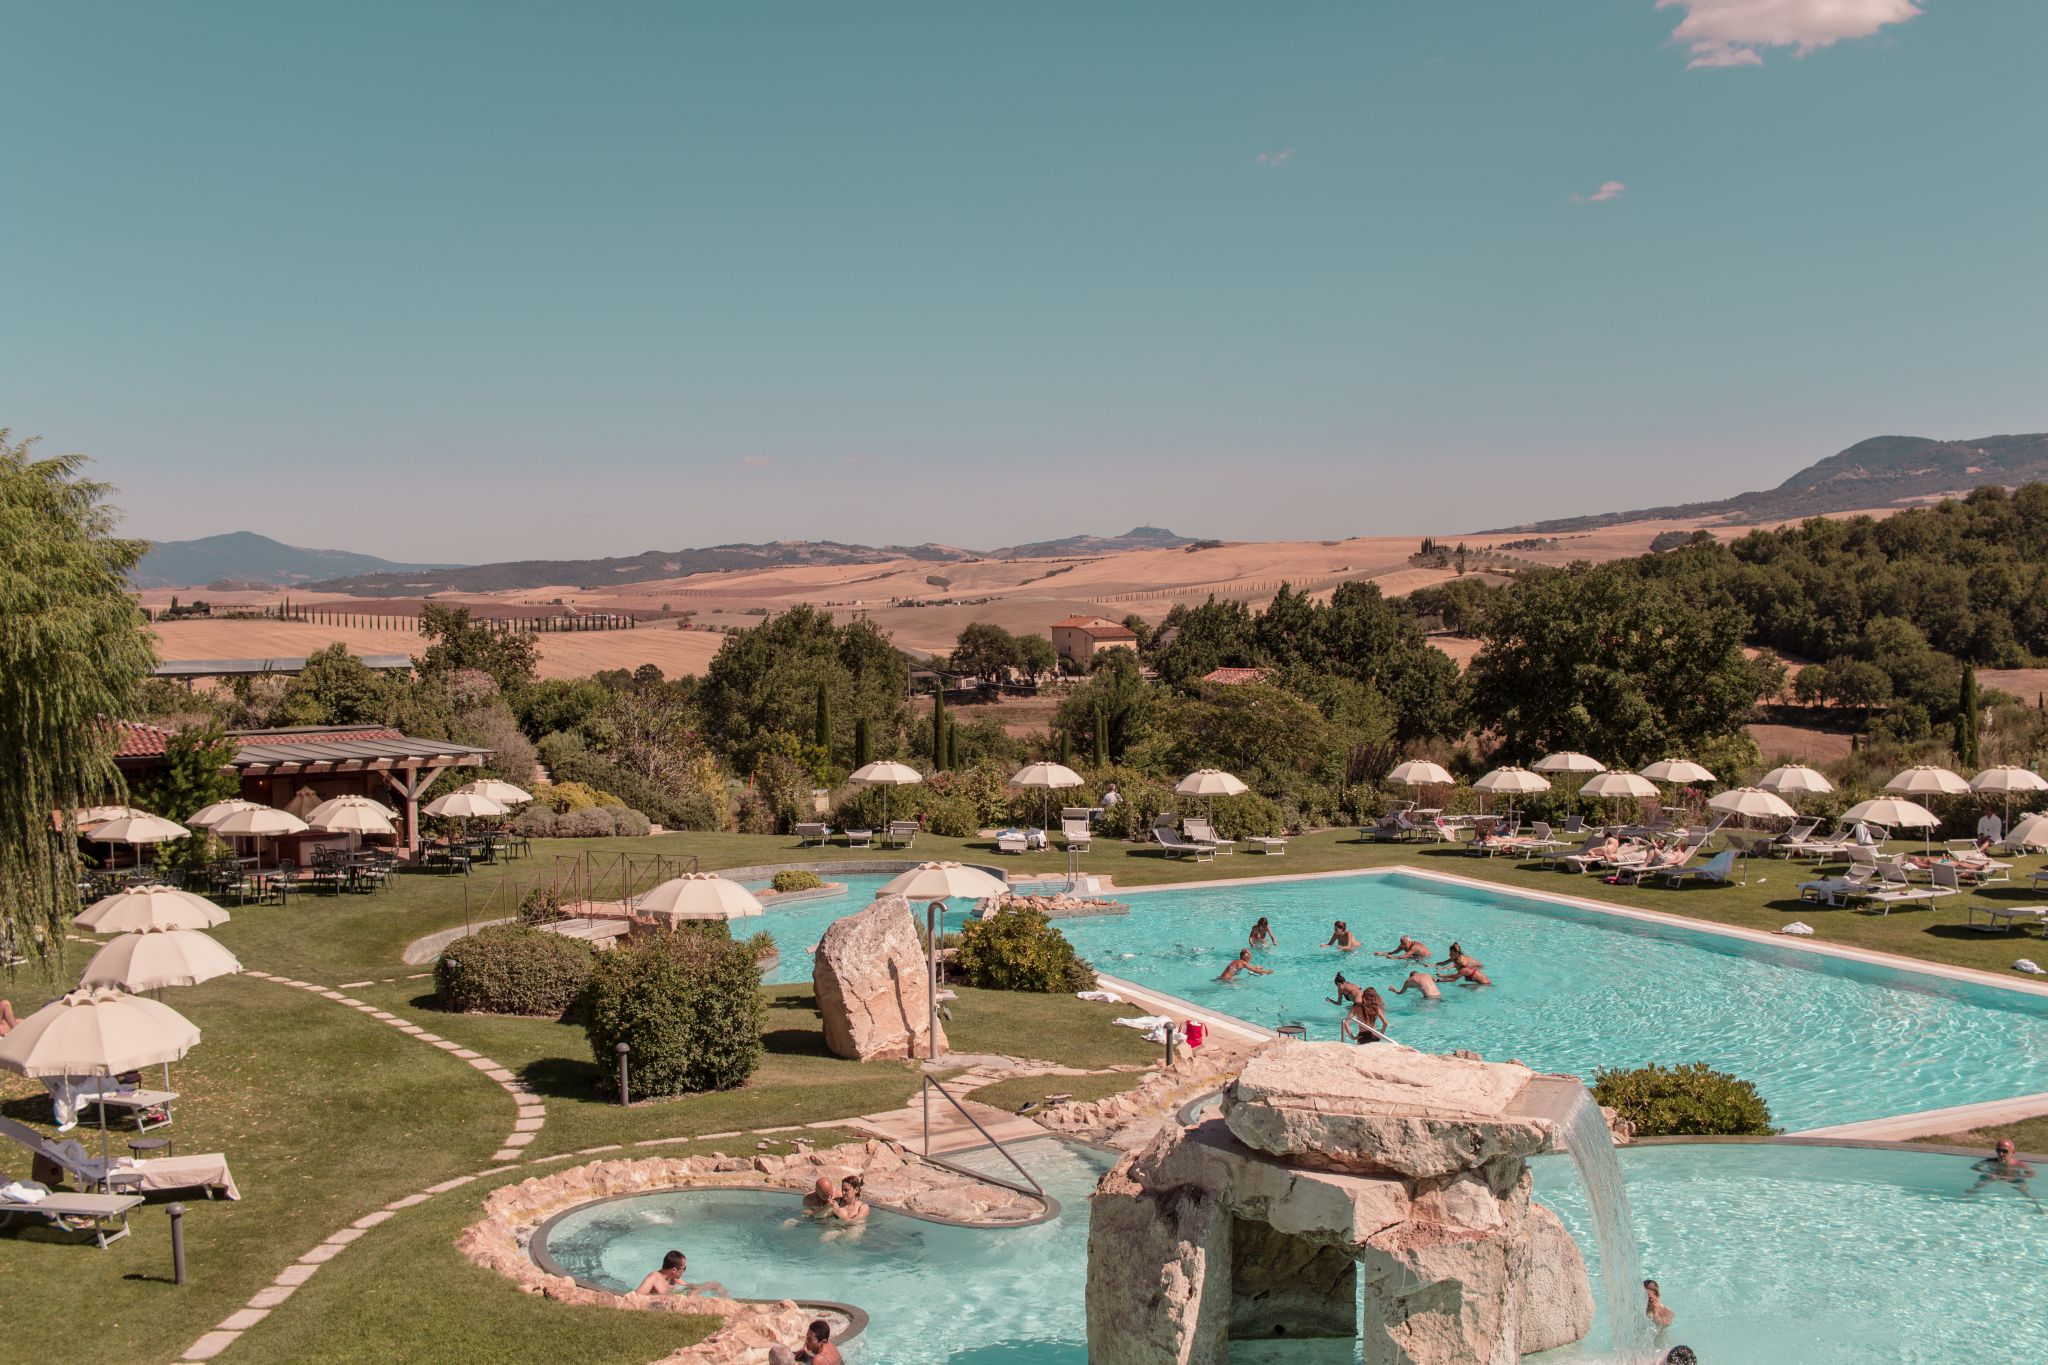 Travel: Adler Thermae Hotel & Spa Review - Raspberry Kitsch